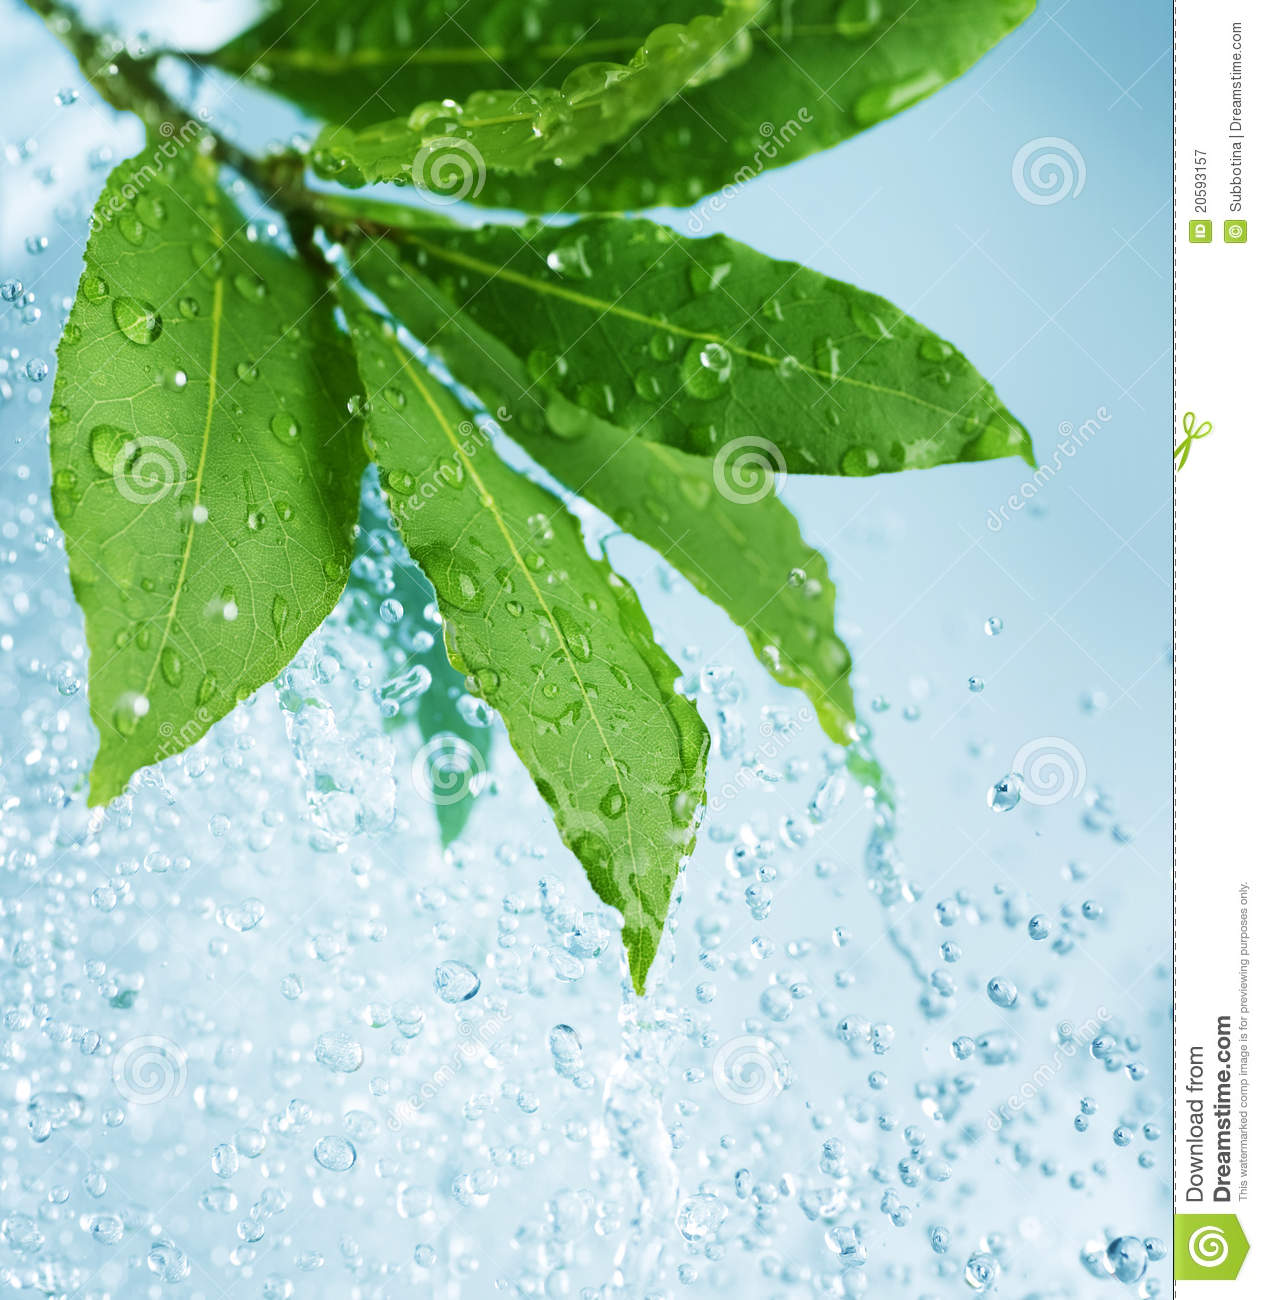 Water Drops And Fresh Green Leaves Royalty Free Stock